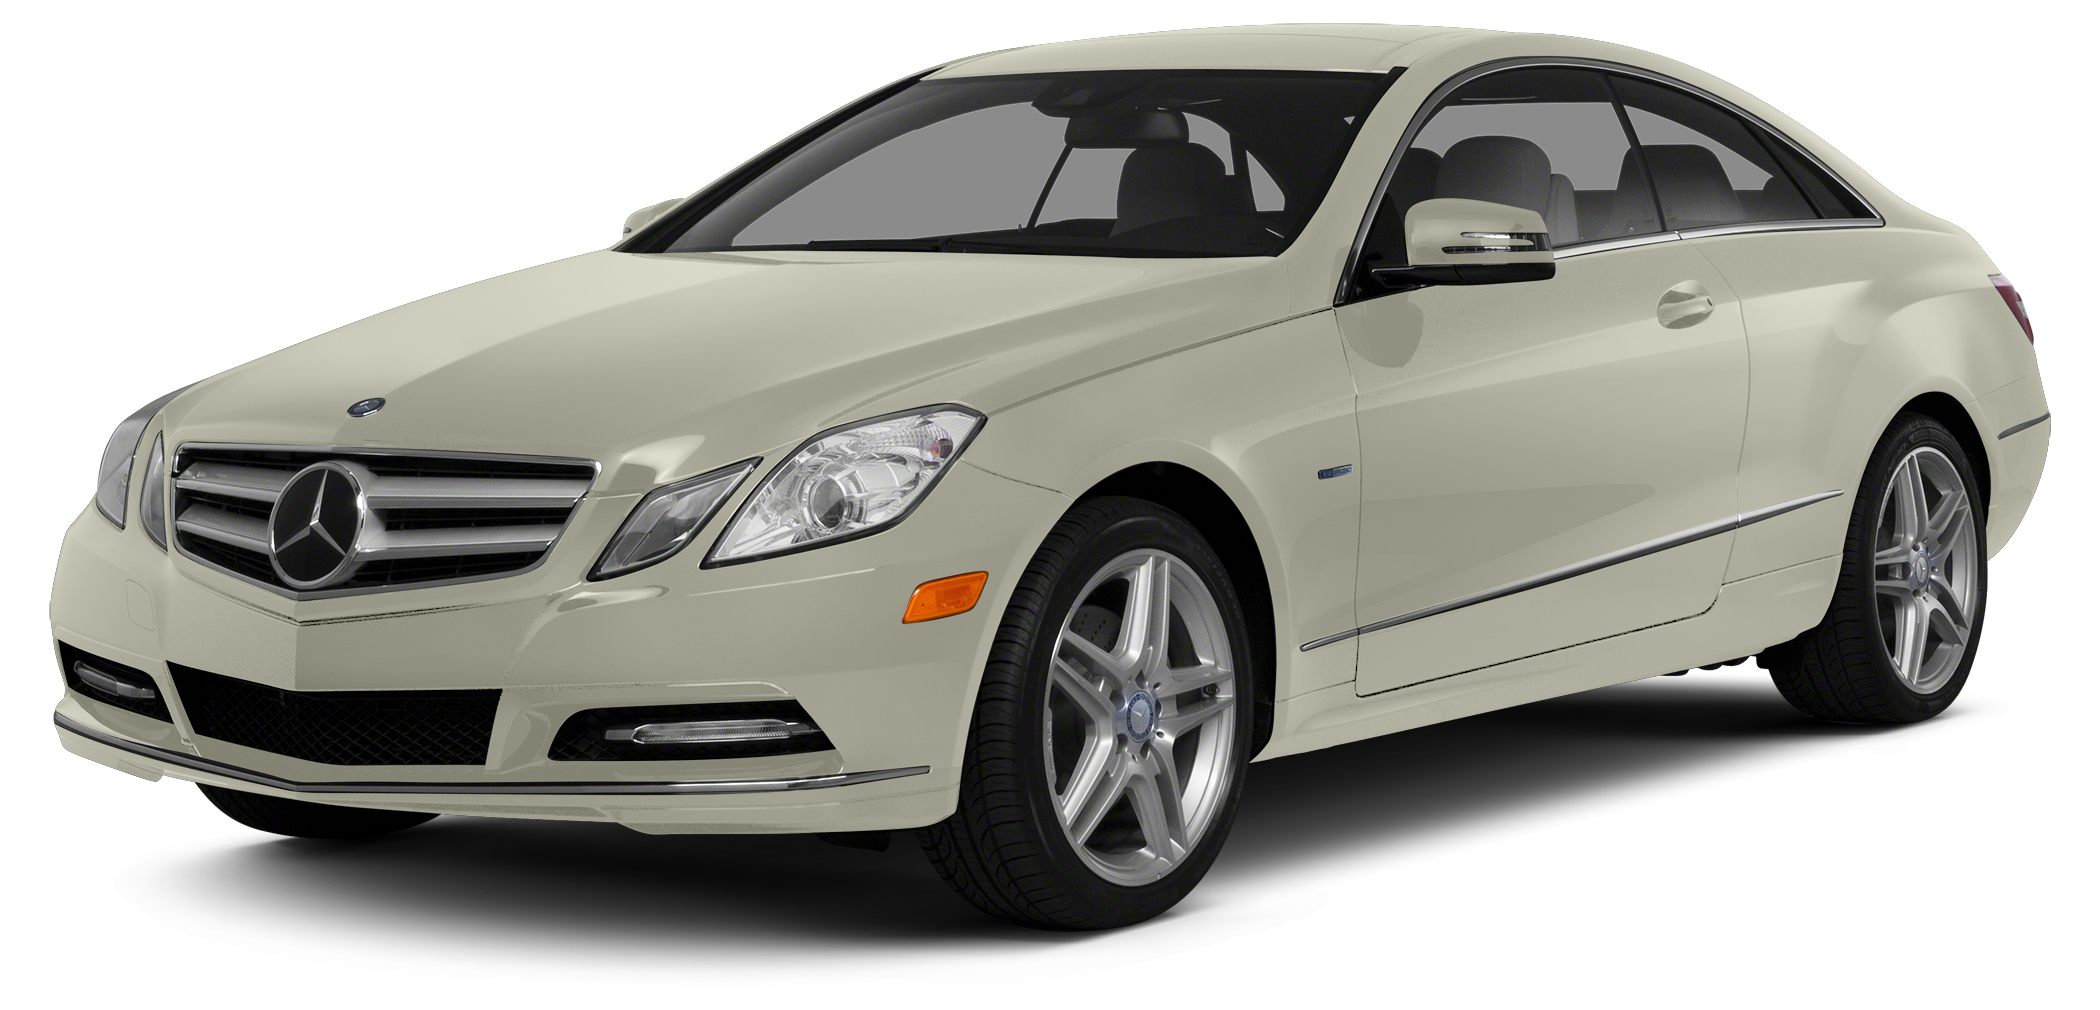 2013 MERCEDES E-Class E350 We sold this one owner 2013 E350 Coupe new We have all the service rec